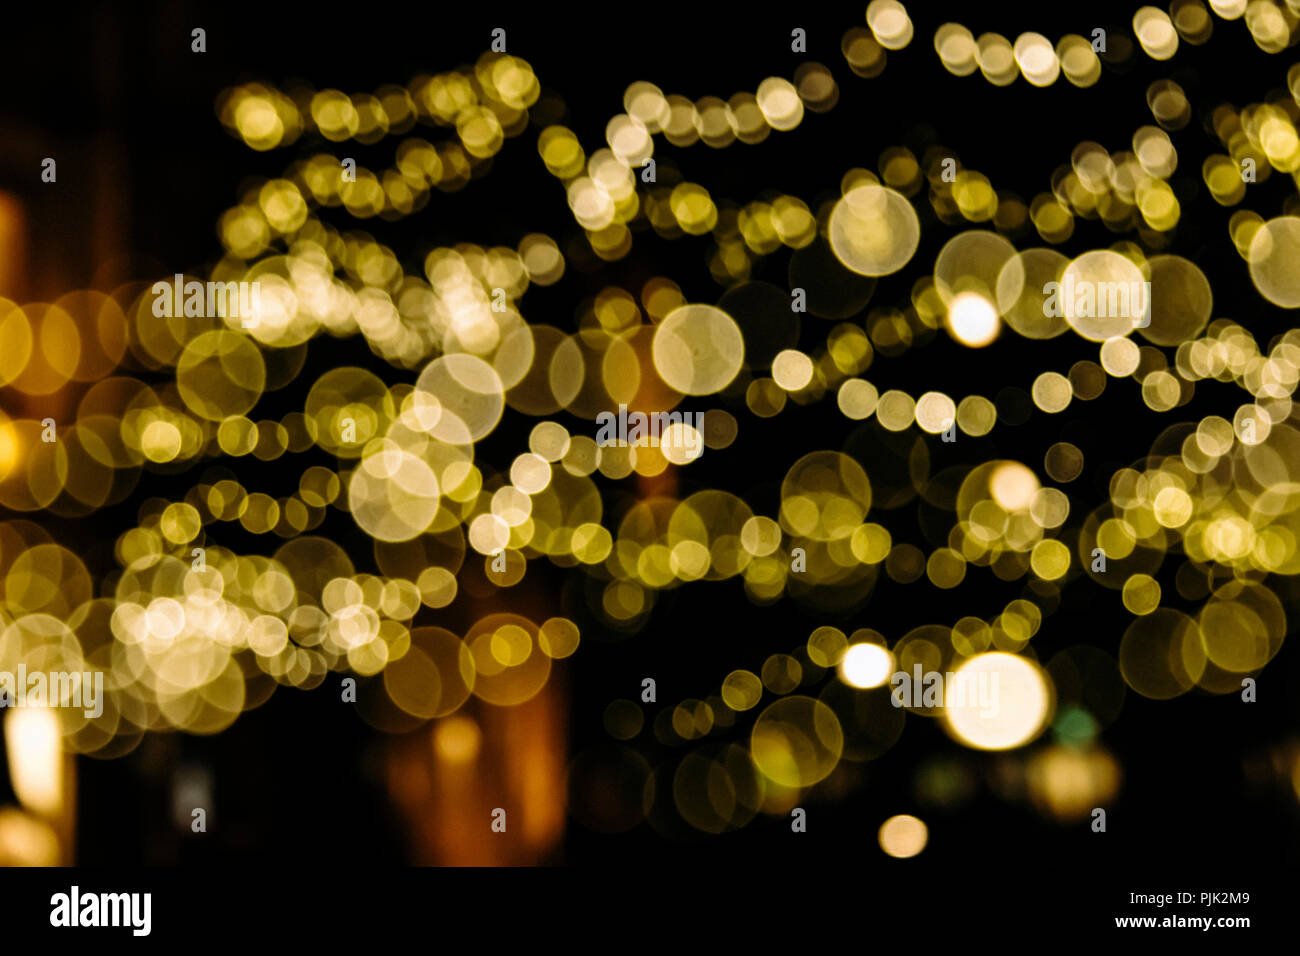 Lights of a Christmas illumination in the city, - Stock Image